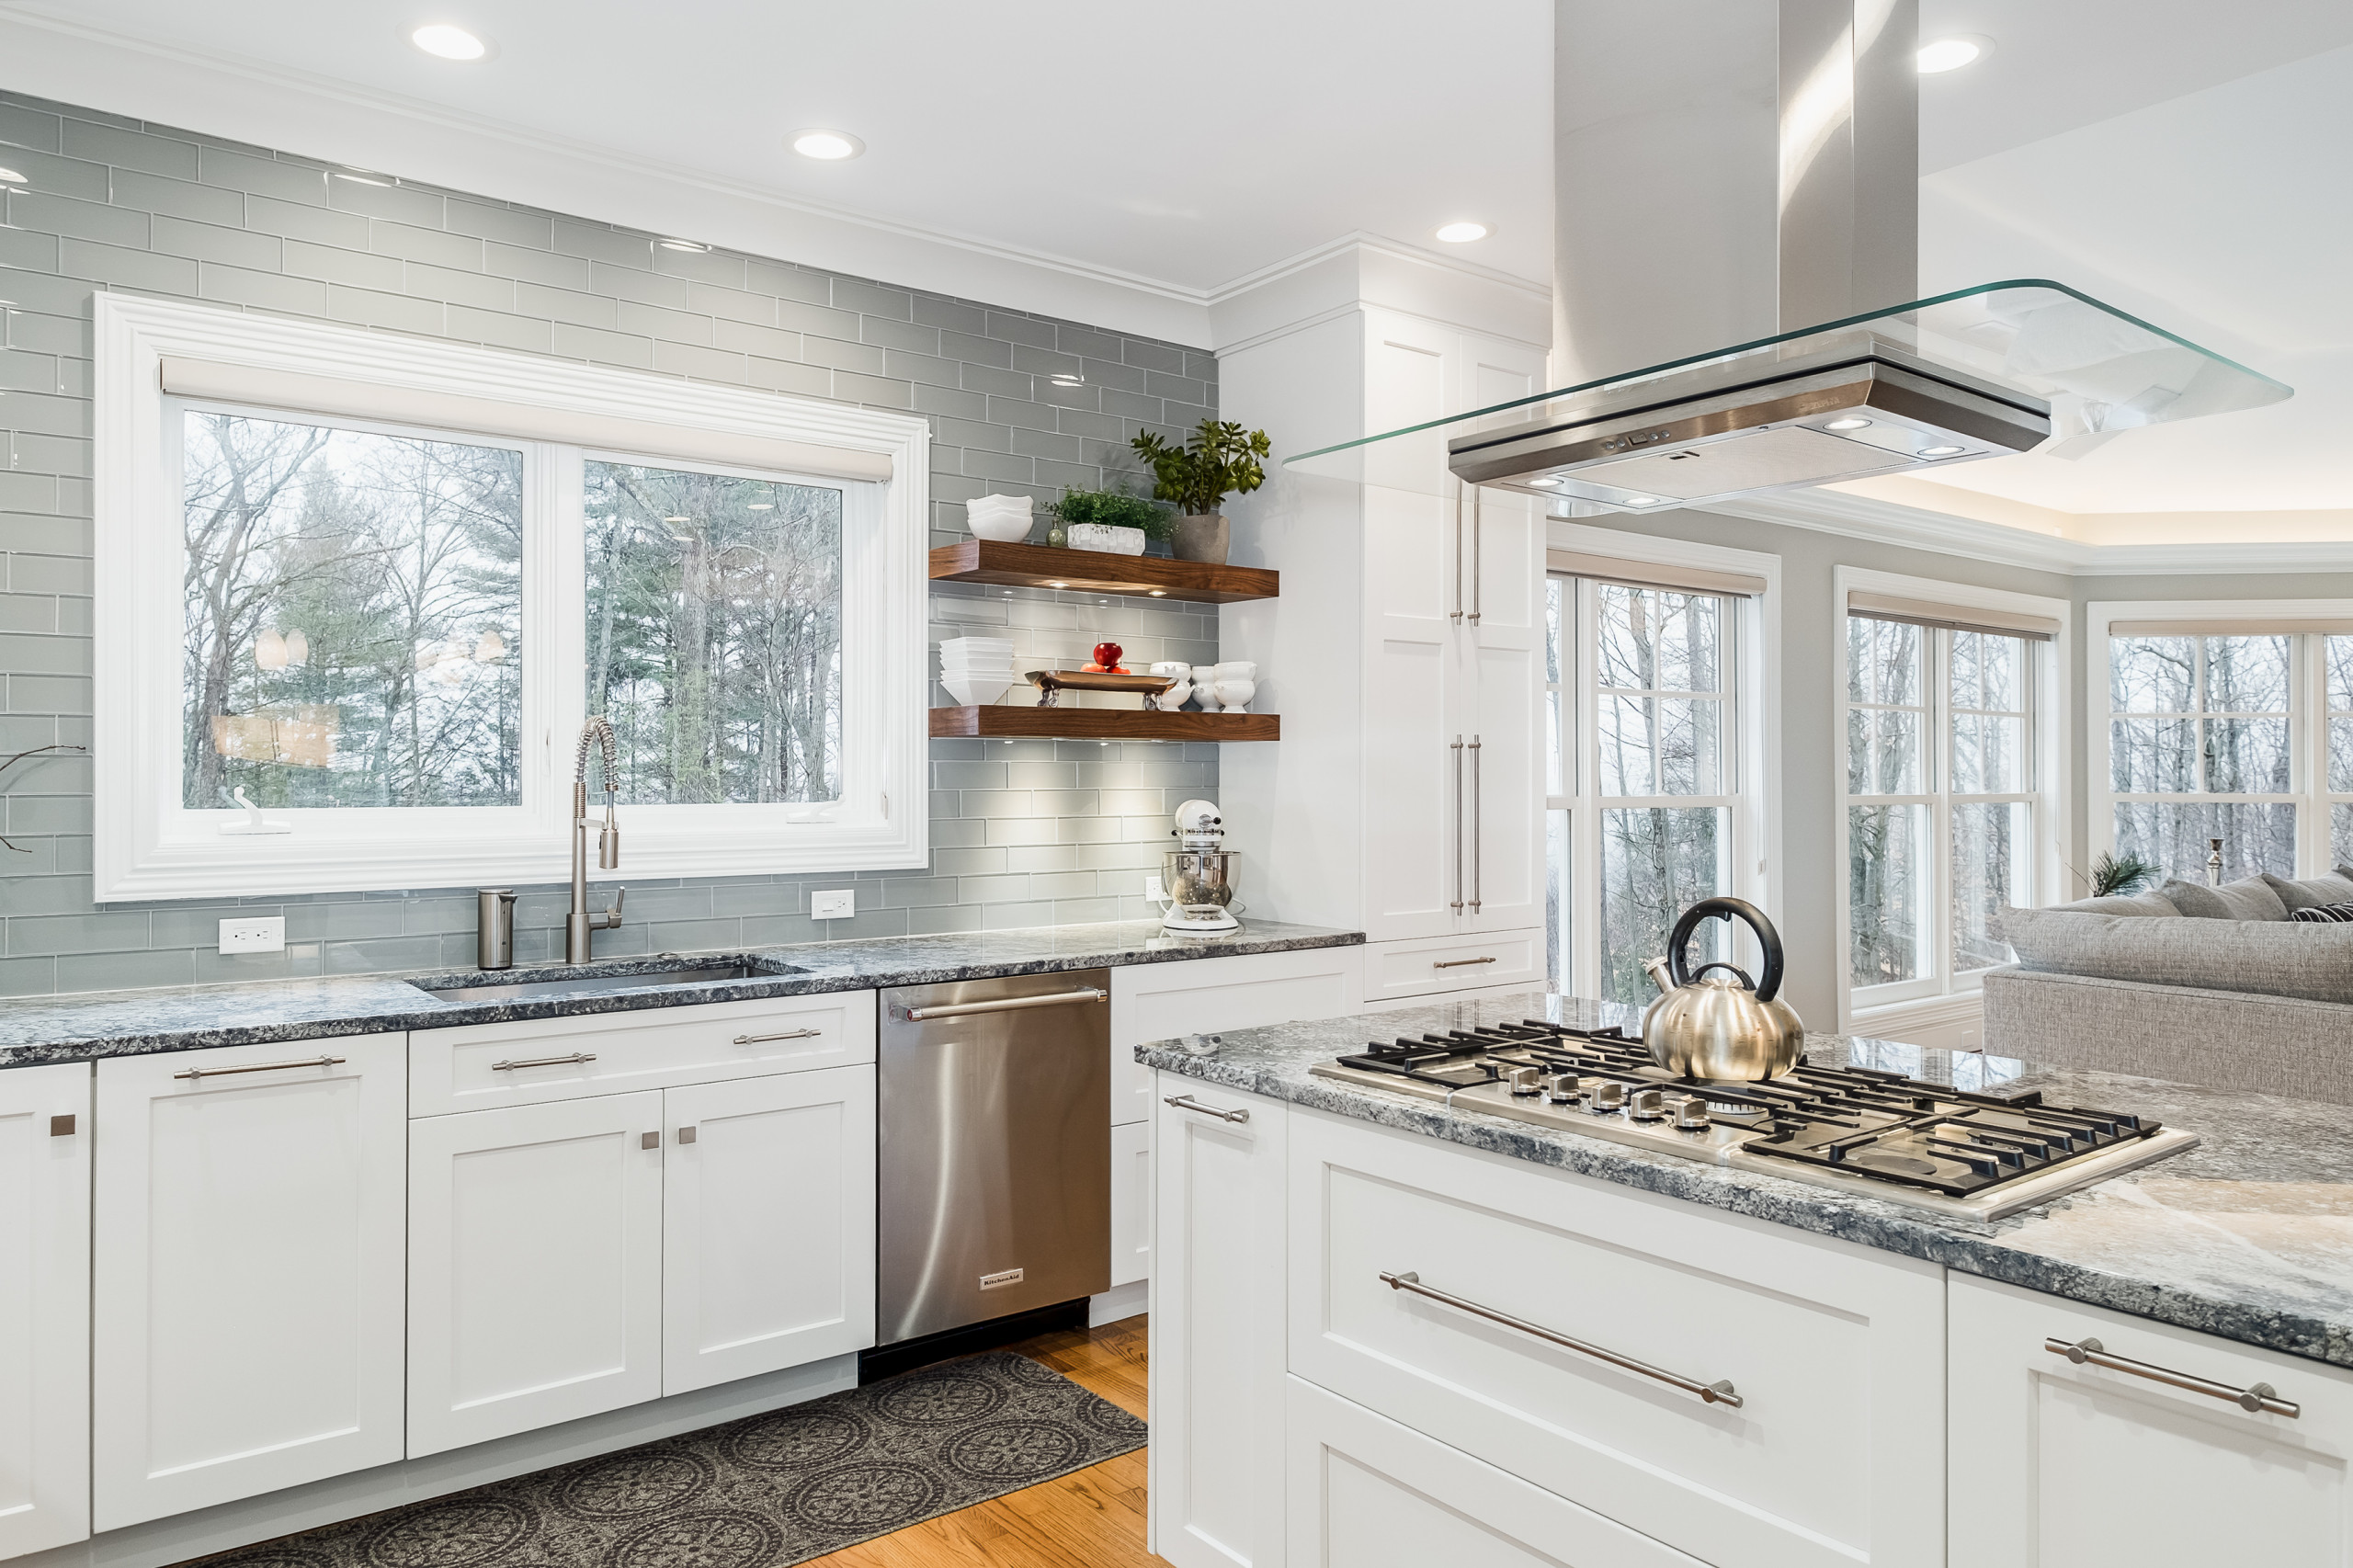 20 Year old Simsbury home gets back in the game